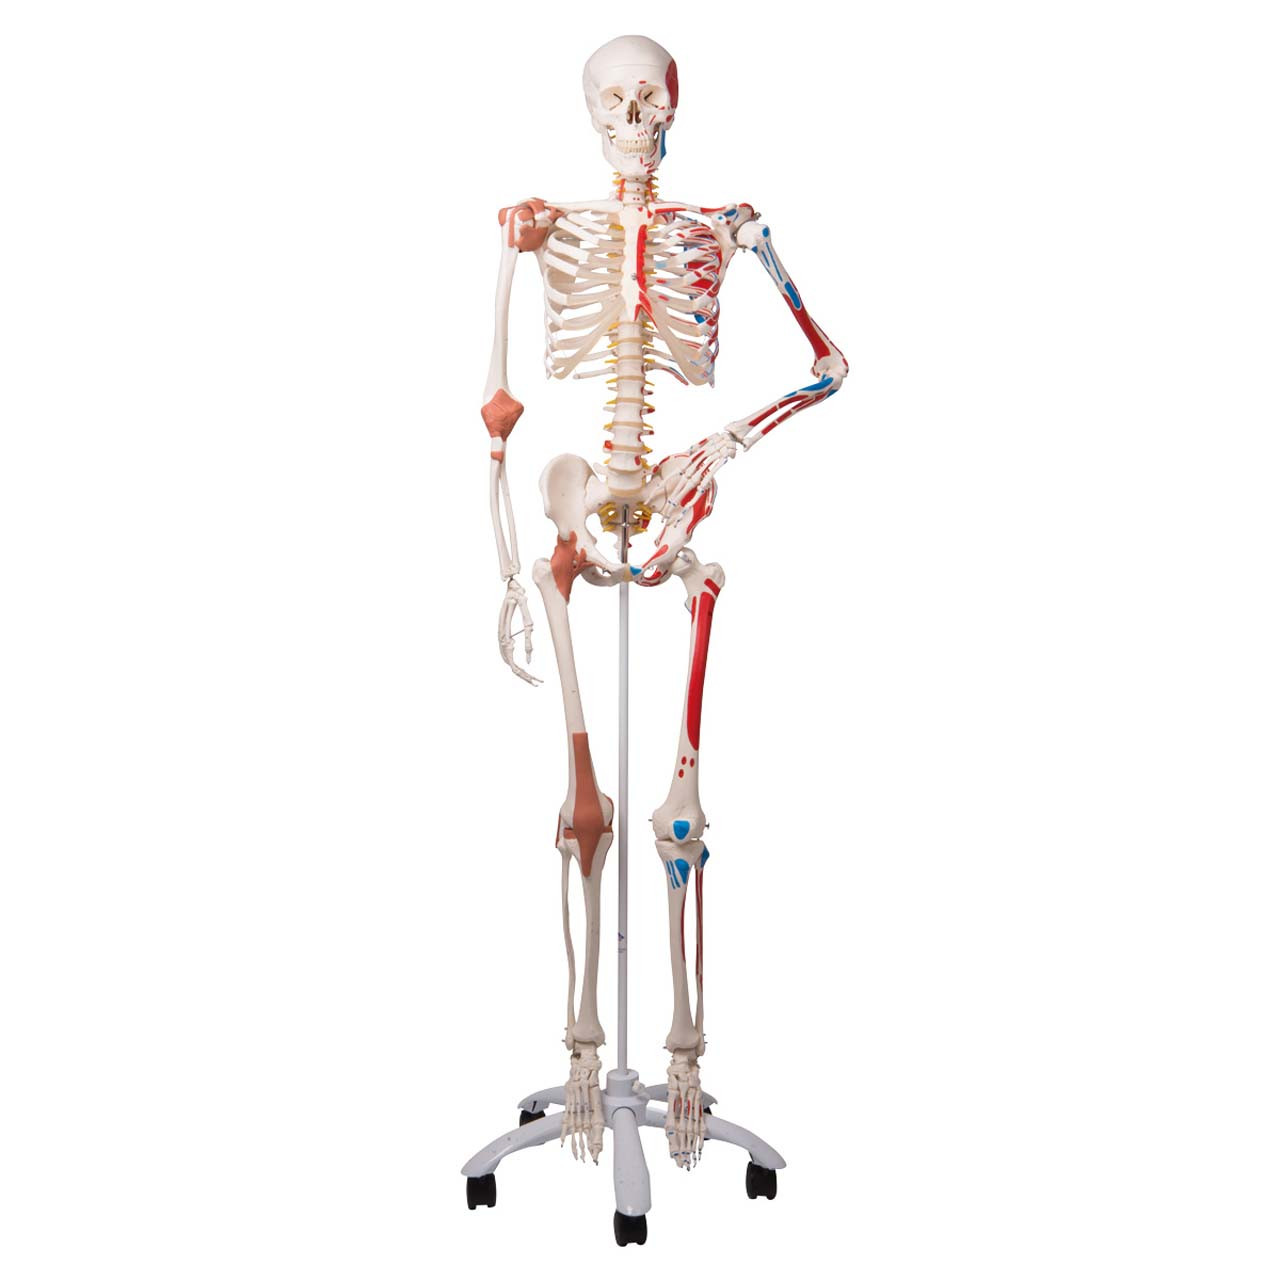 1020176 - Skeleton Model with Muscles and Ligaments - Sam